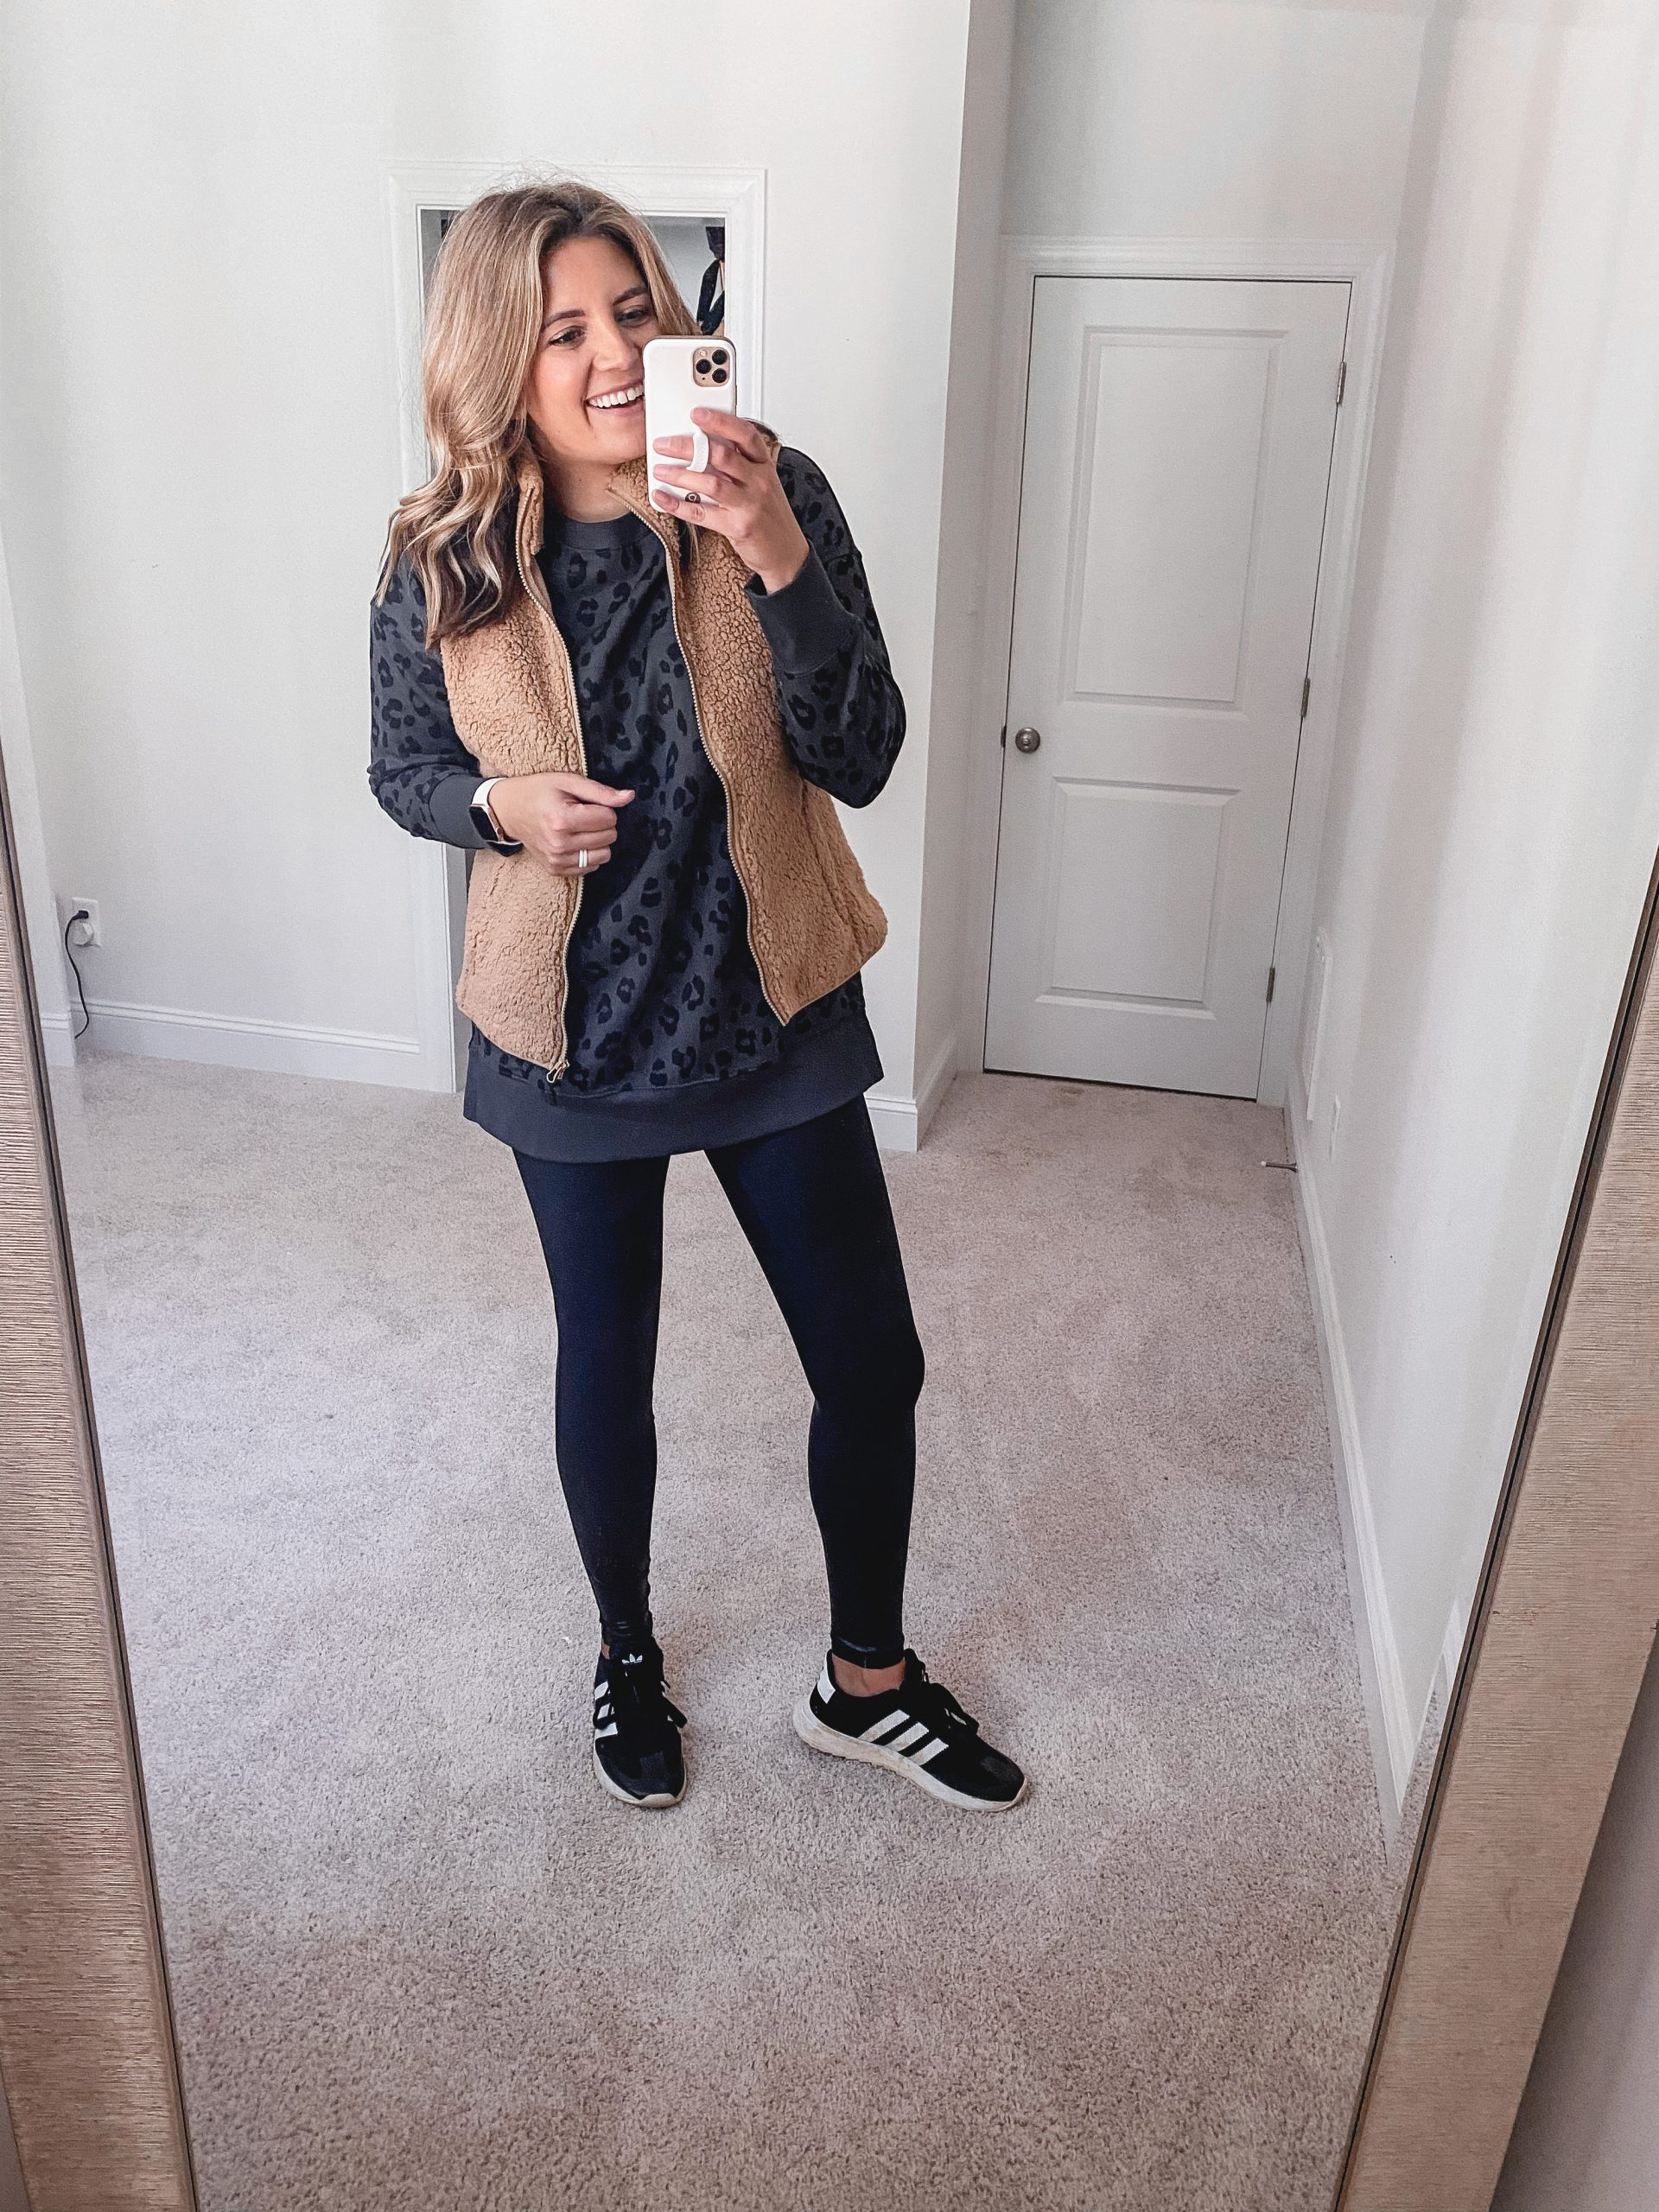 Virginia blogger, Lauren Dix, shares 8 new fall Old Navy finds, including tunics, joggers, and comfy sweaters!